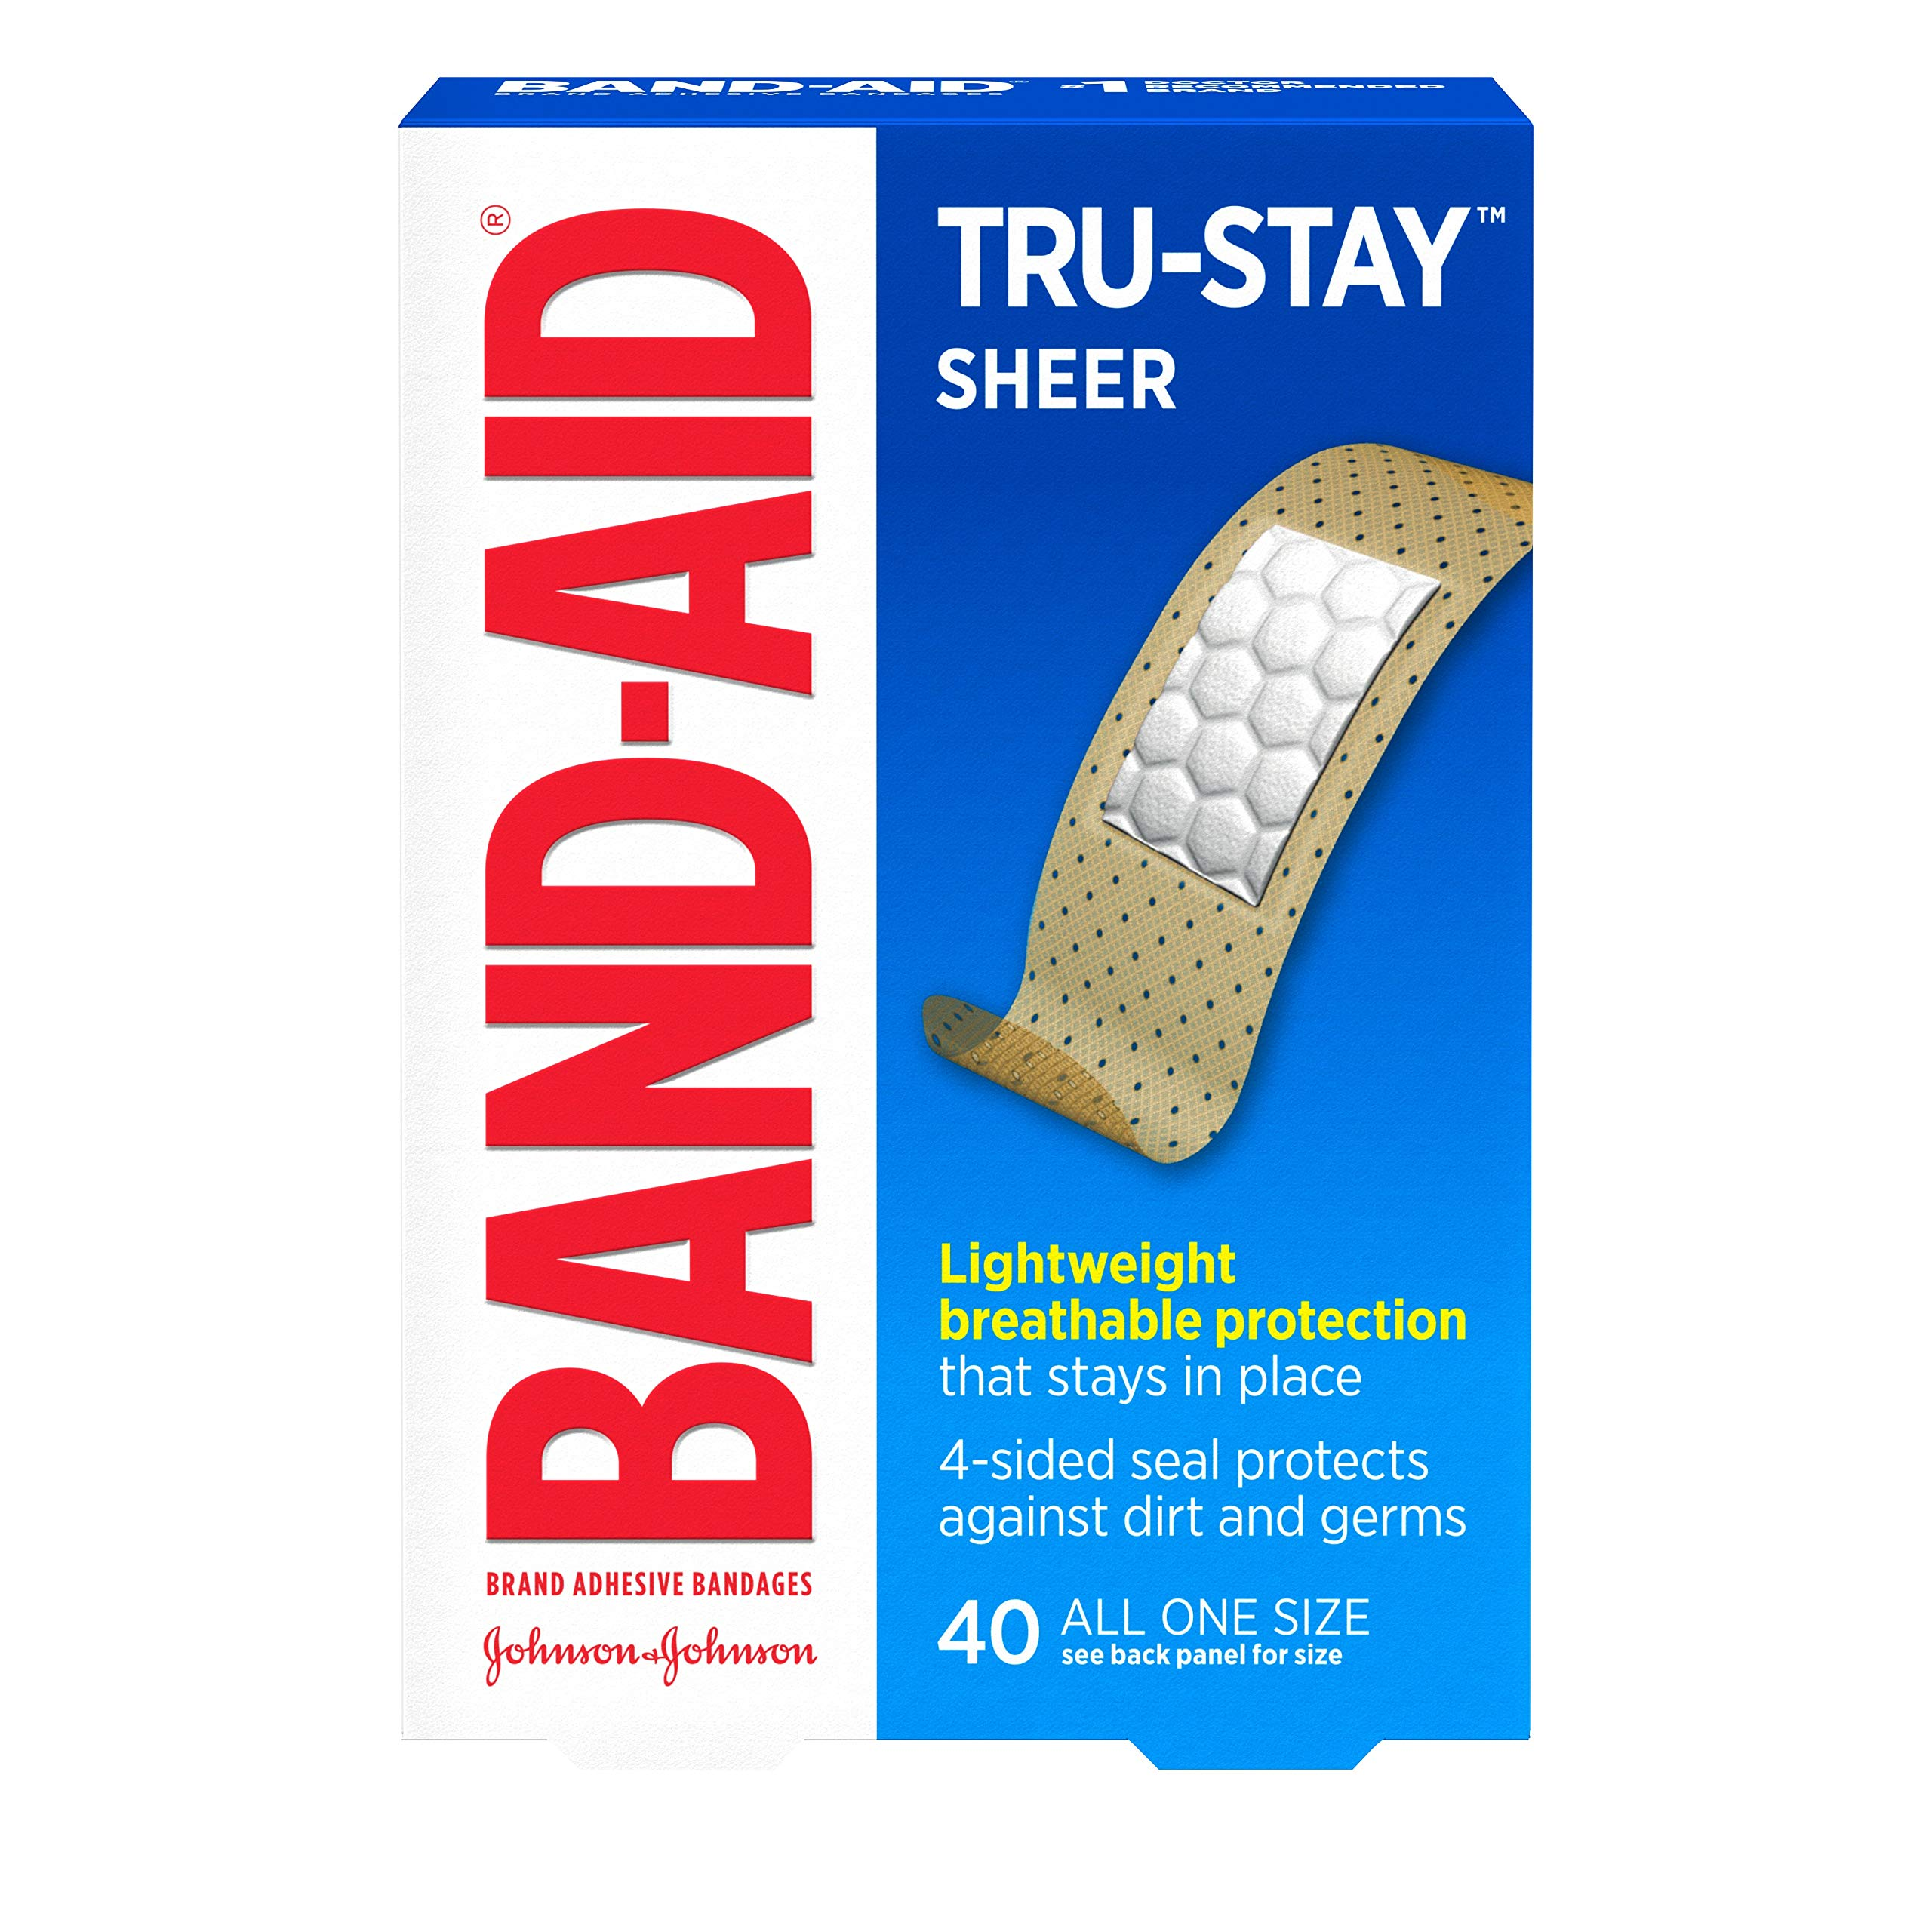 Band-Aid Brand Tru-Stay Sheer Strips Adhesive Bandages for First Aid and Wound Care, All One Size, 40 ct by Band-Aid (Image #1)